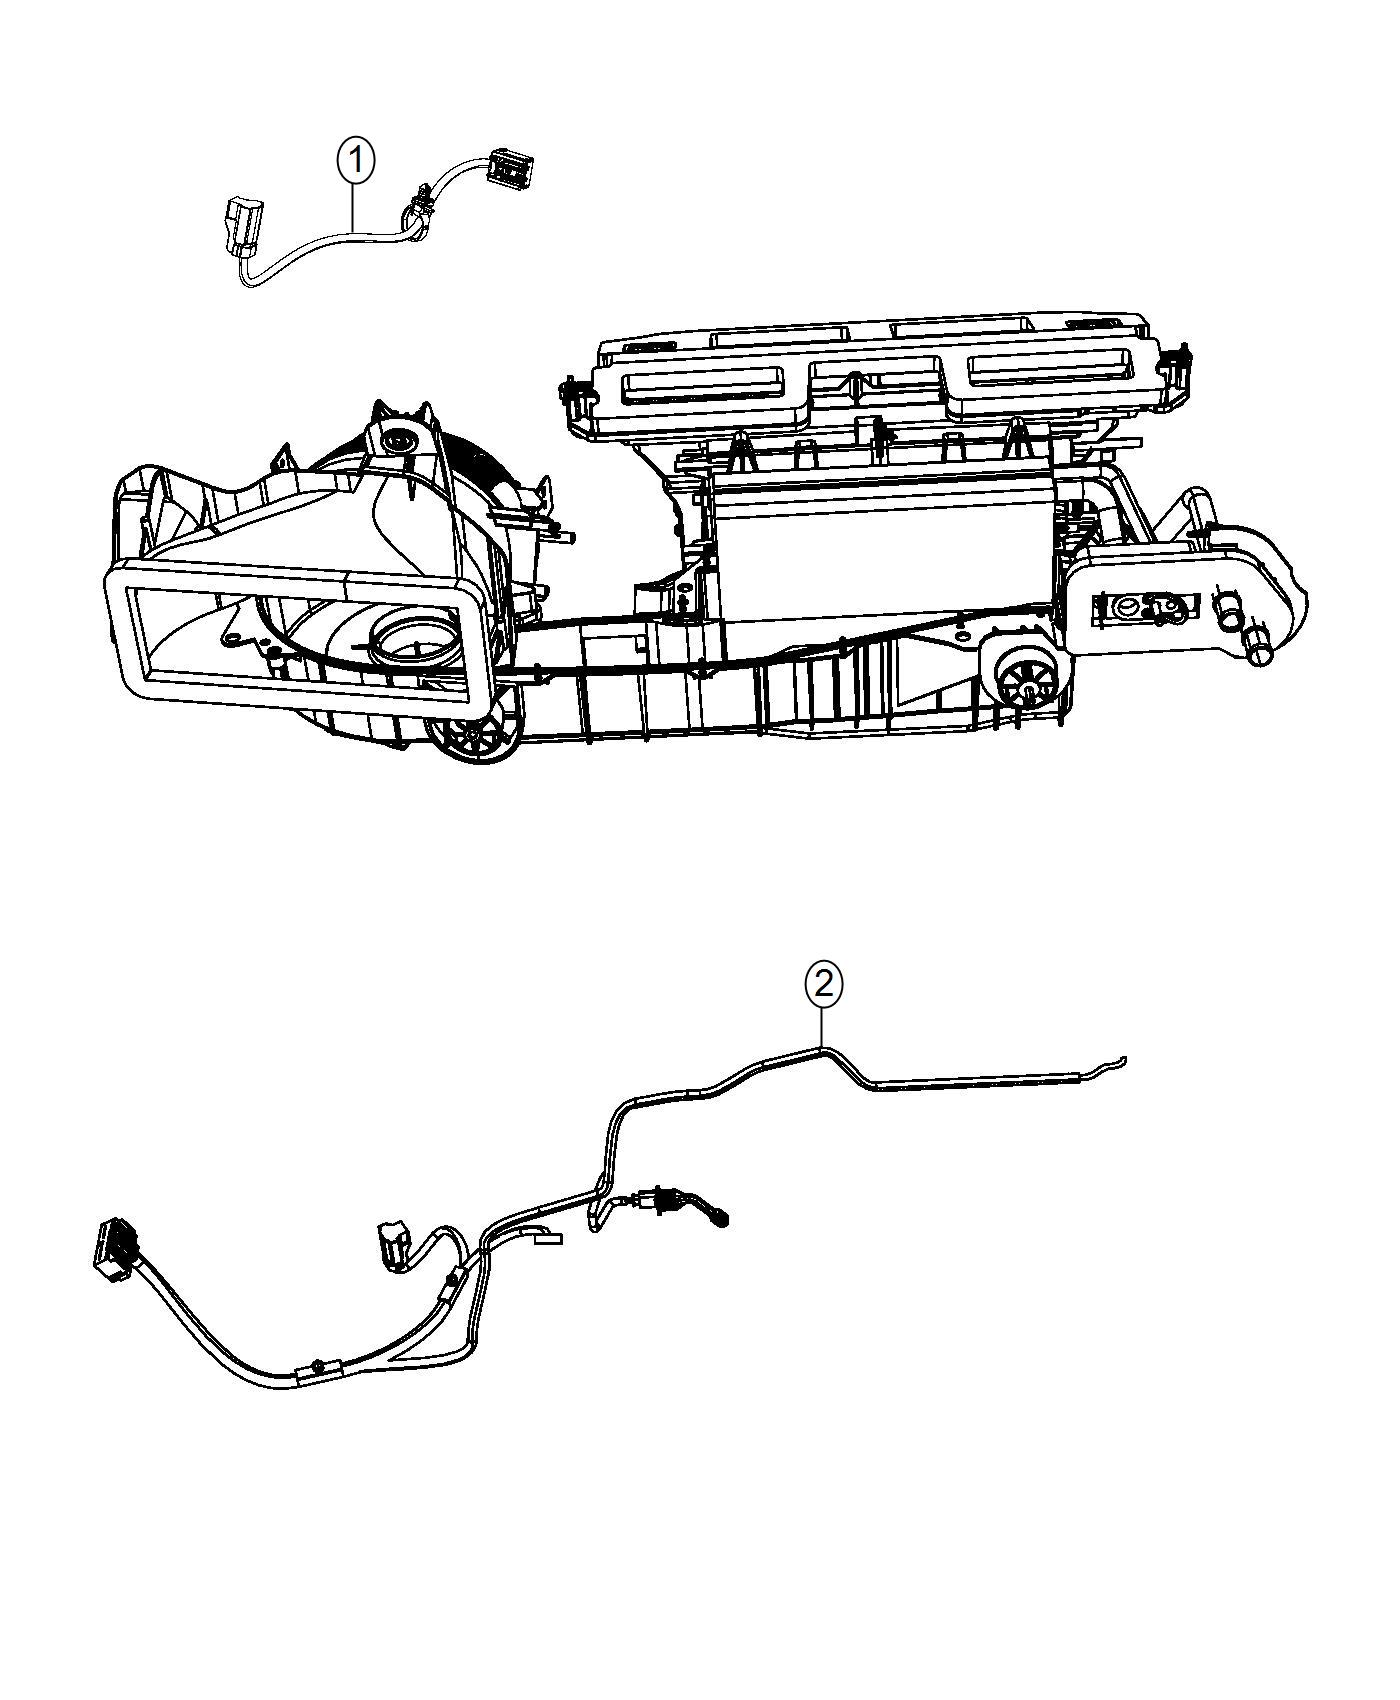 2008 Chrysler 300 Ac Wiring Diagram